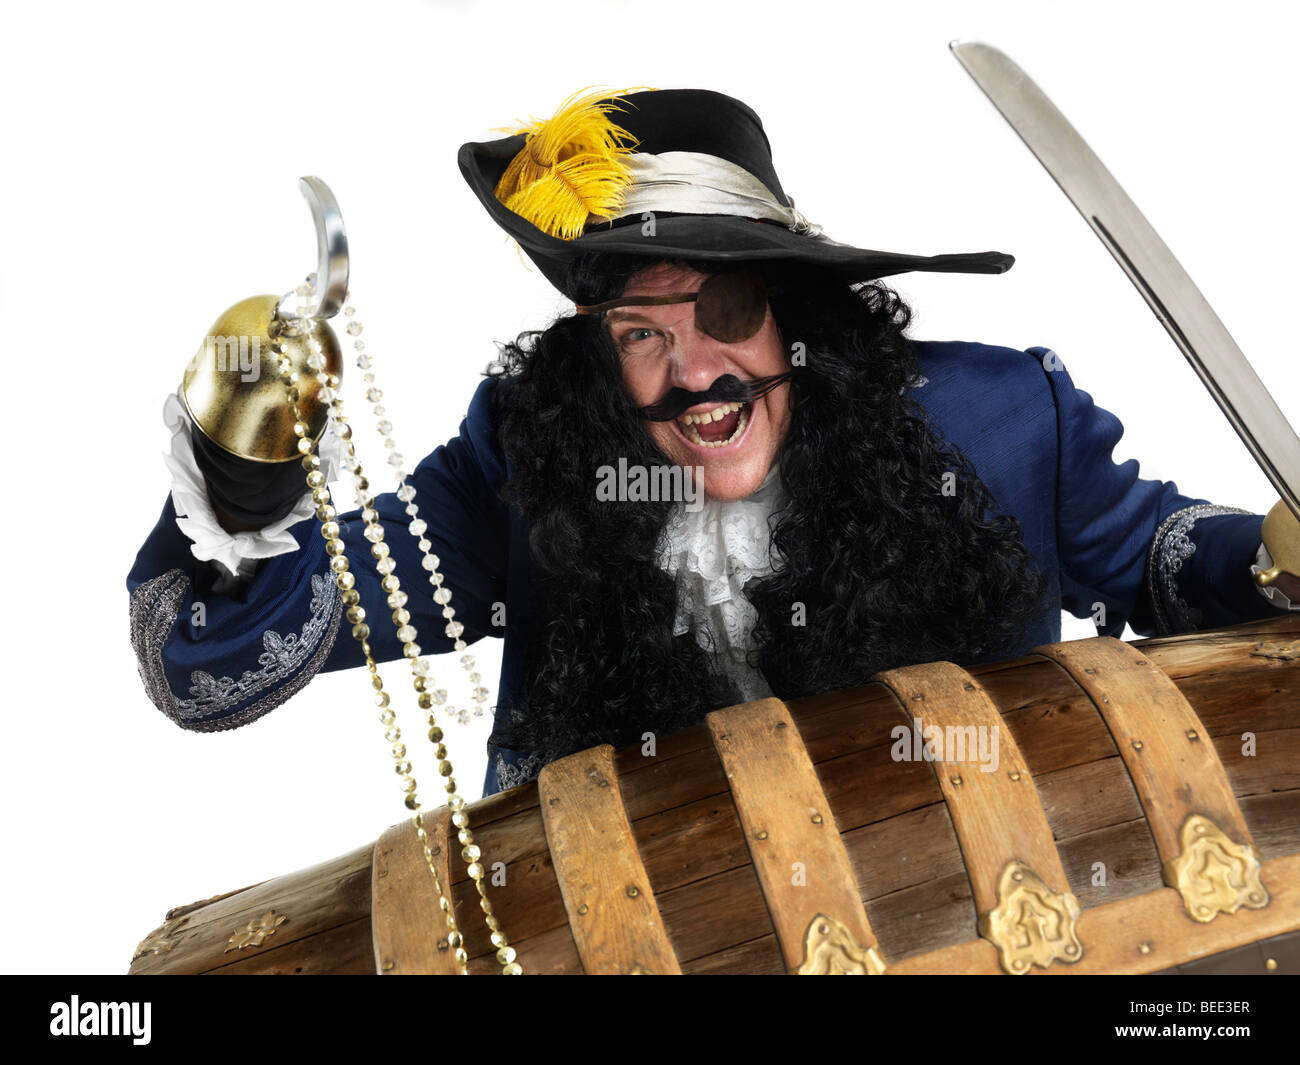 Laughing pirate opening a treasure chest - Stock Image